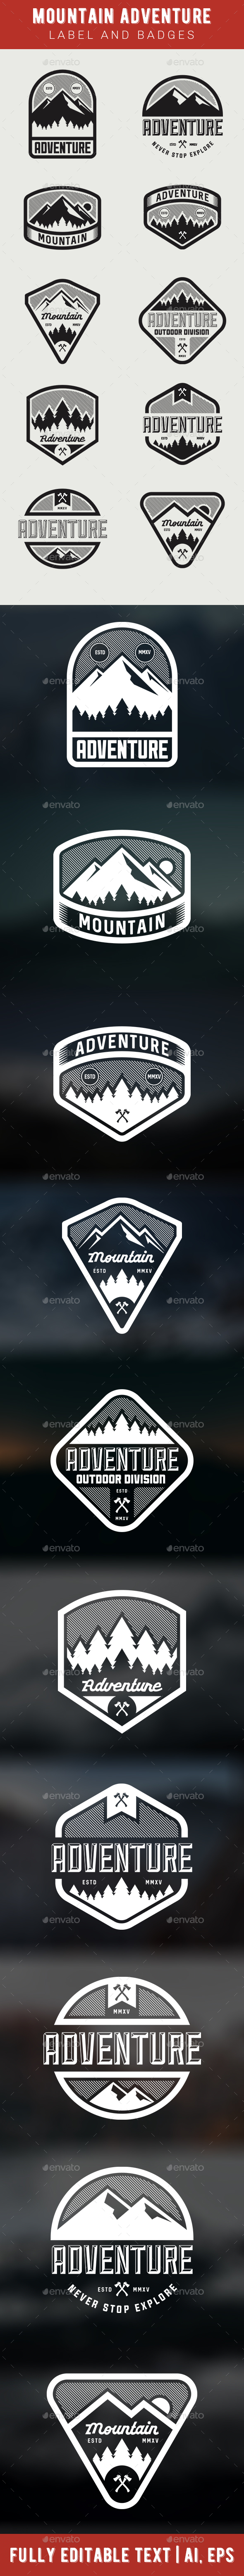 GraphicRiver Mountain Adventure Label and Badges 20699727